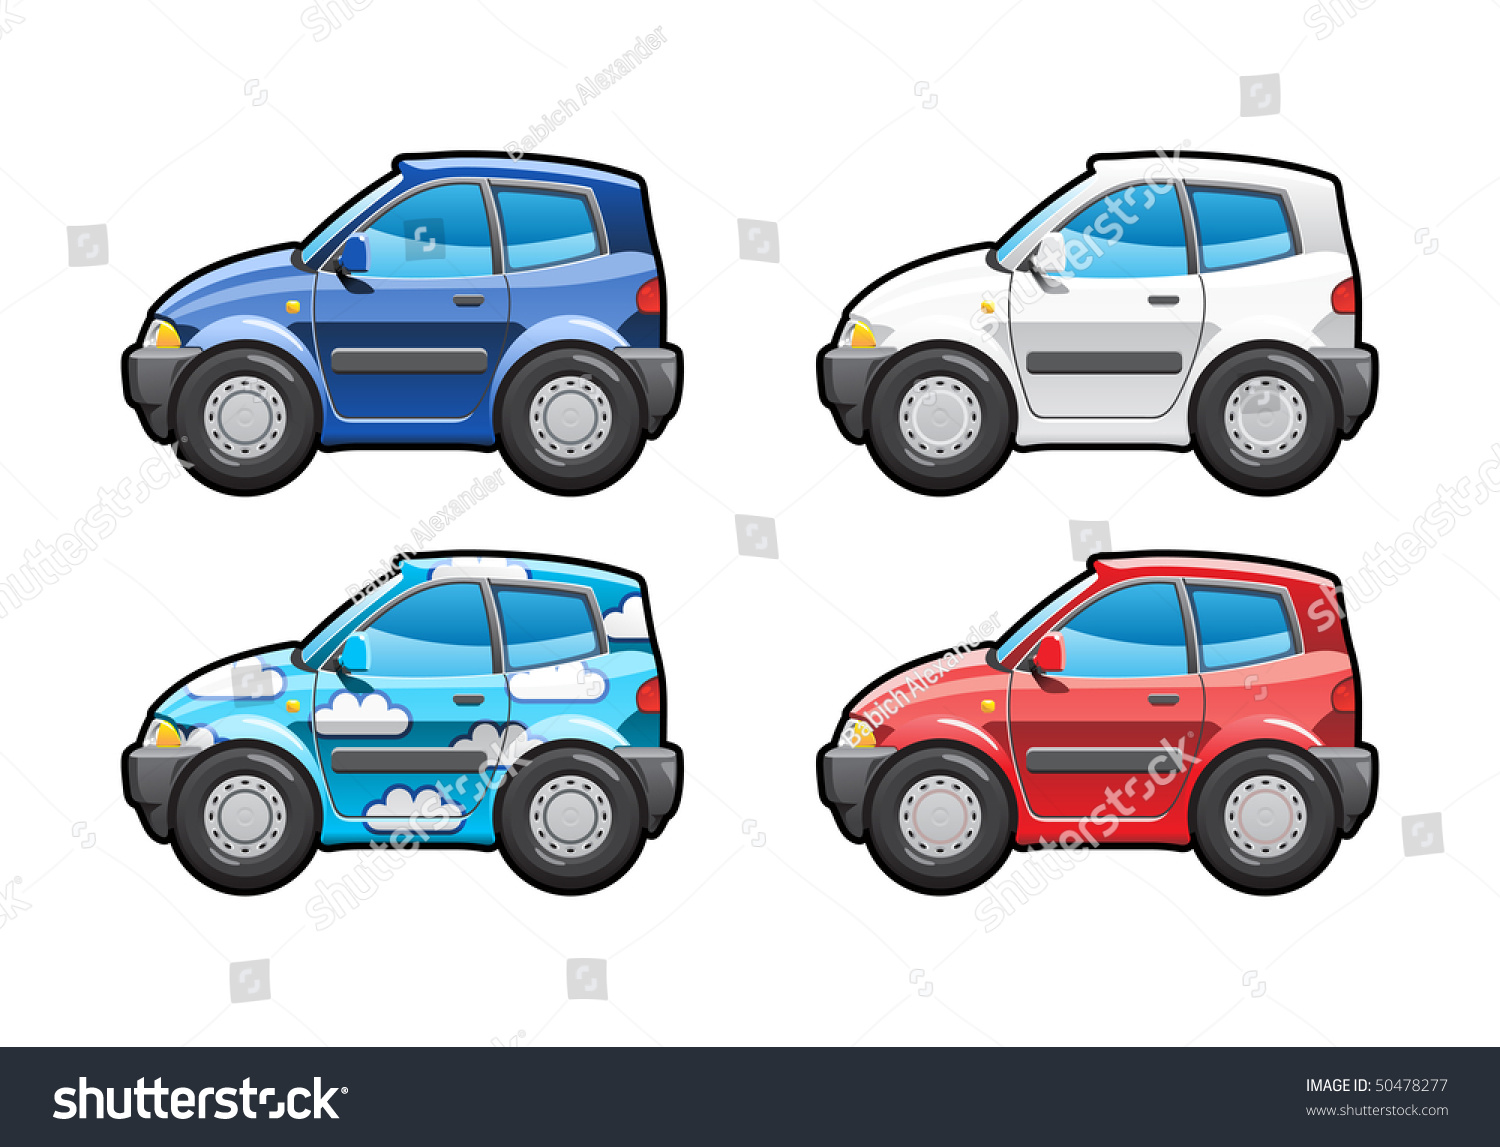 hatchback part my collections car body stock vector 50478277 shutterstock. Black Bedroom Furniture Sets. Home Design Ideas